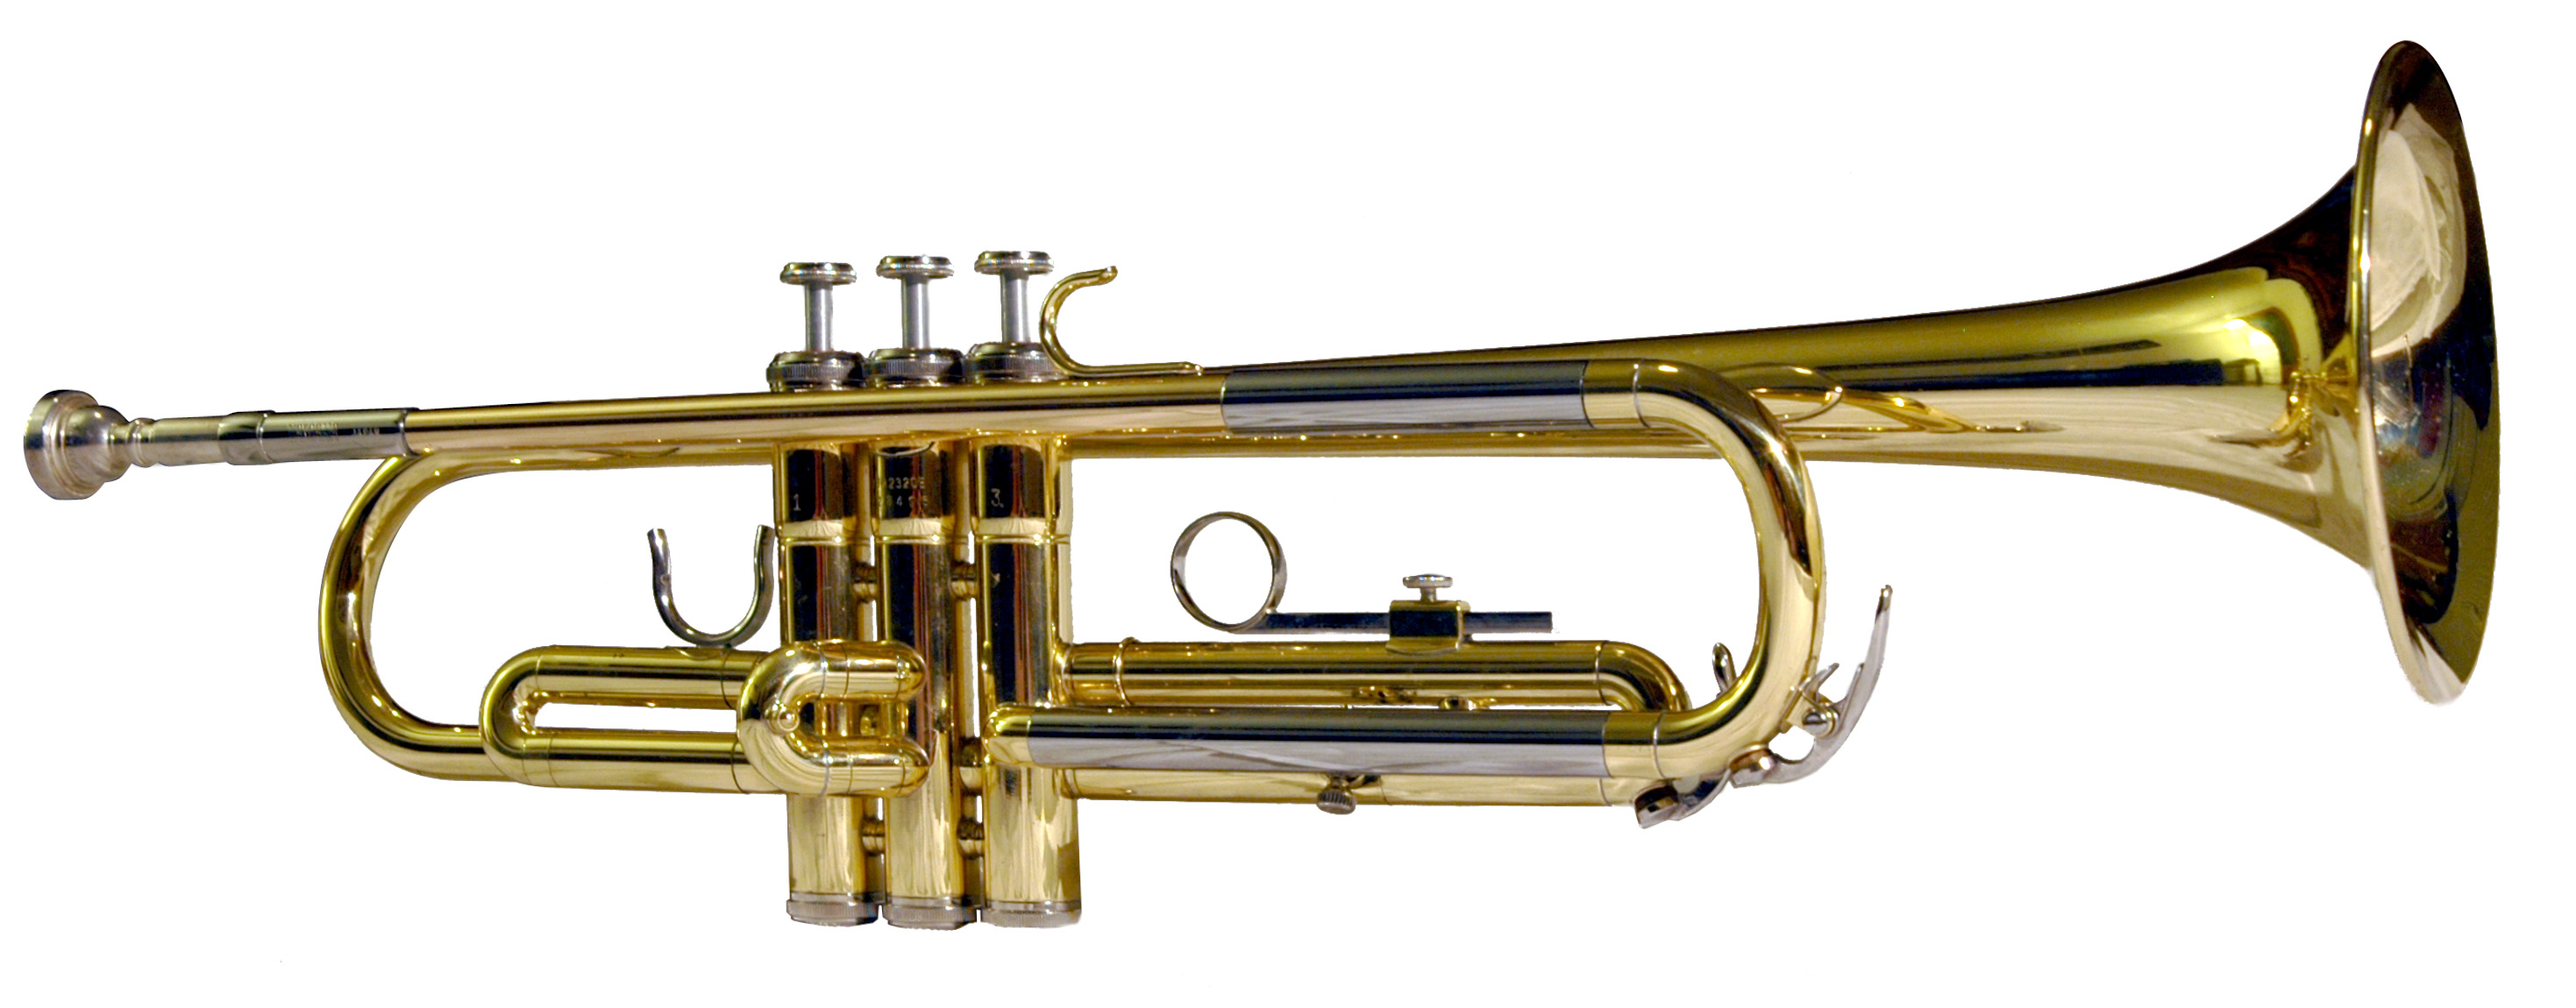 the trombone history The trombone is said to have been created in the middle of the 15th century until the 18th century the trombone was called a saqueboute (in french) or a sackbut (in english).